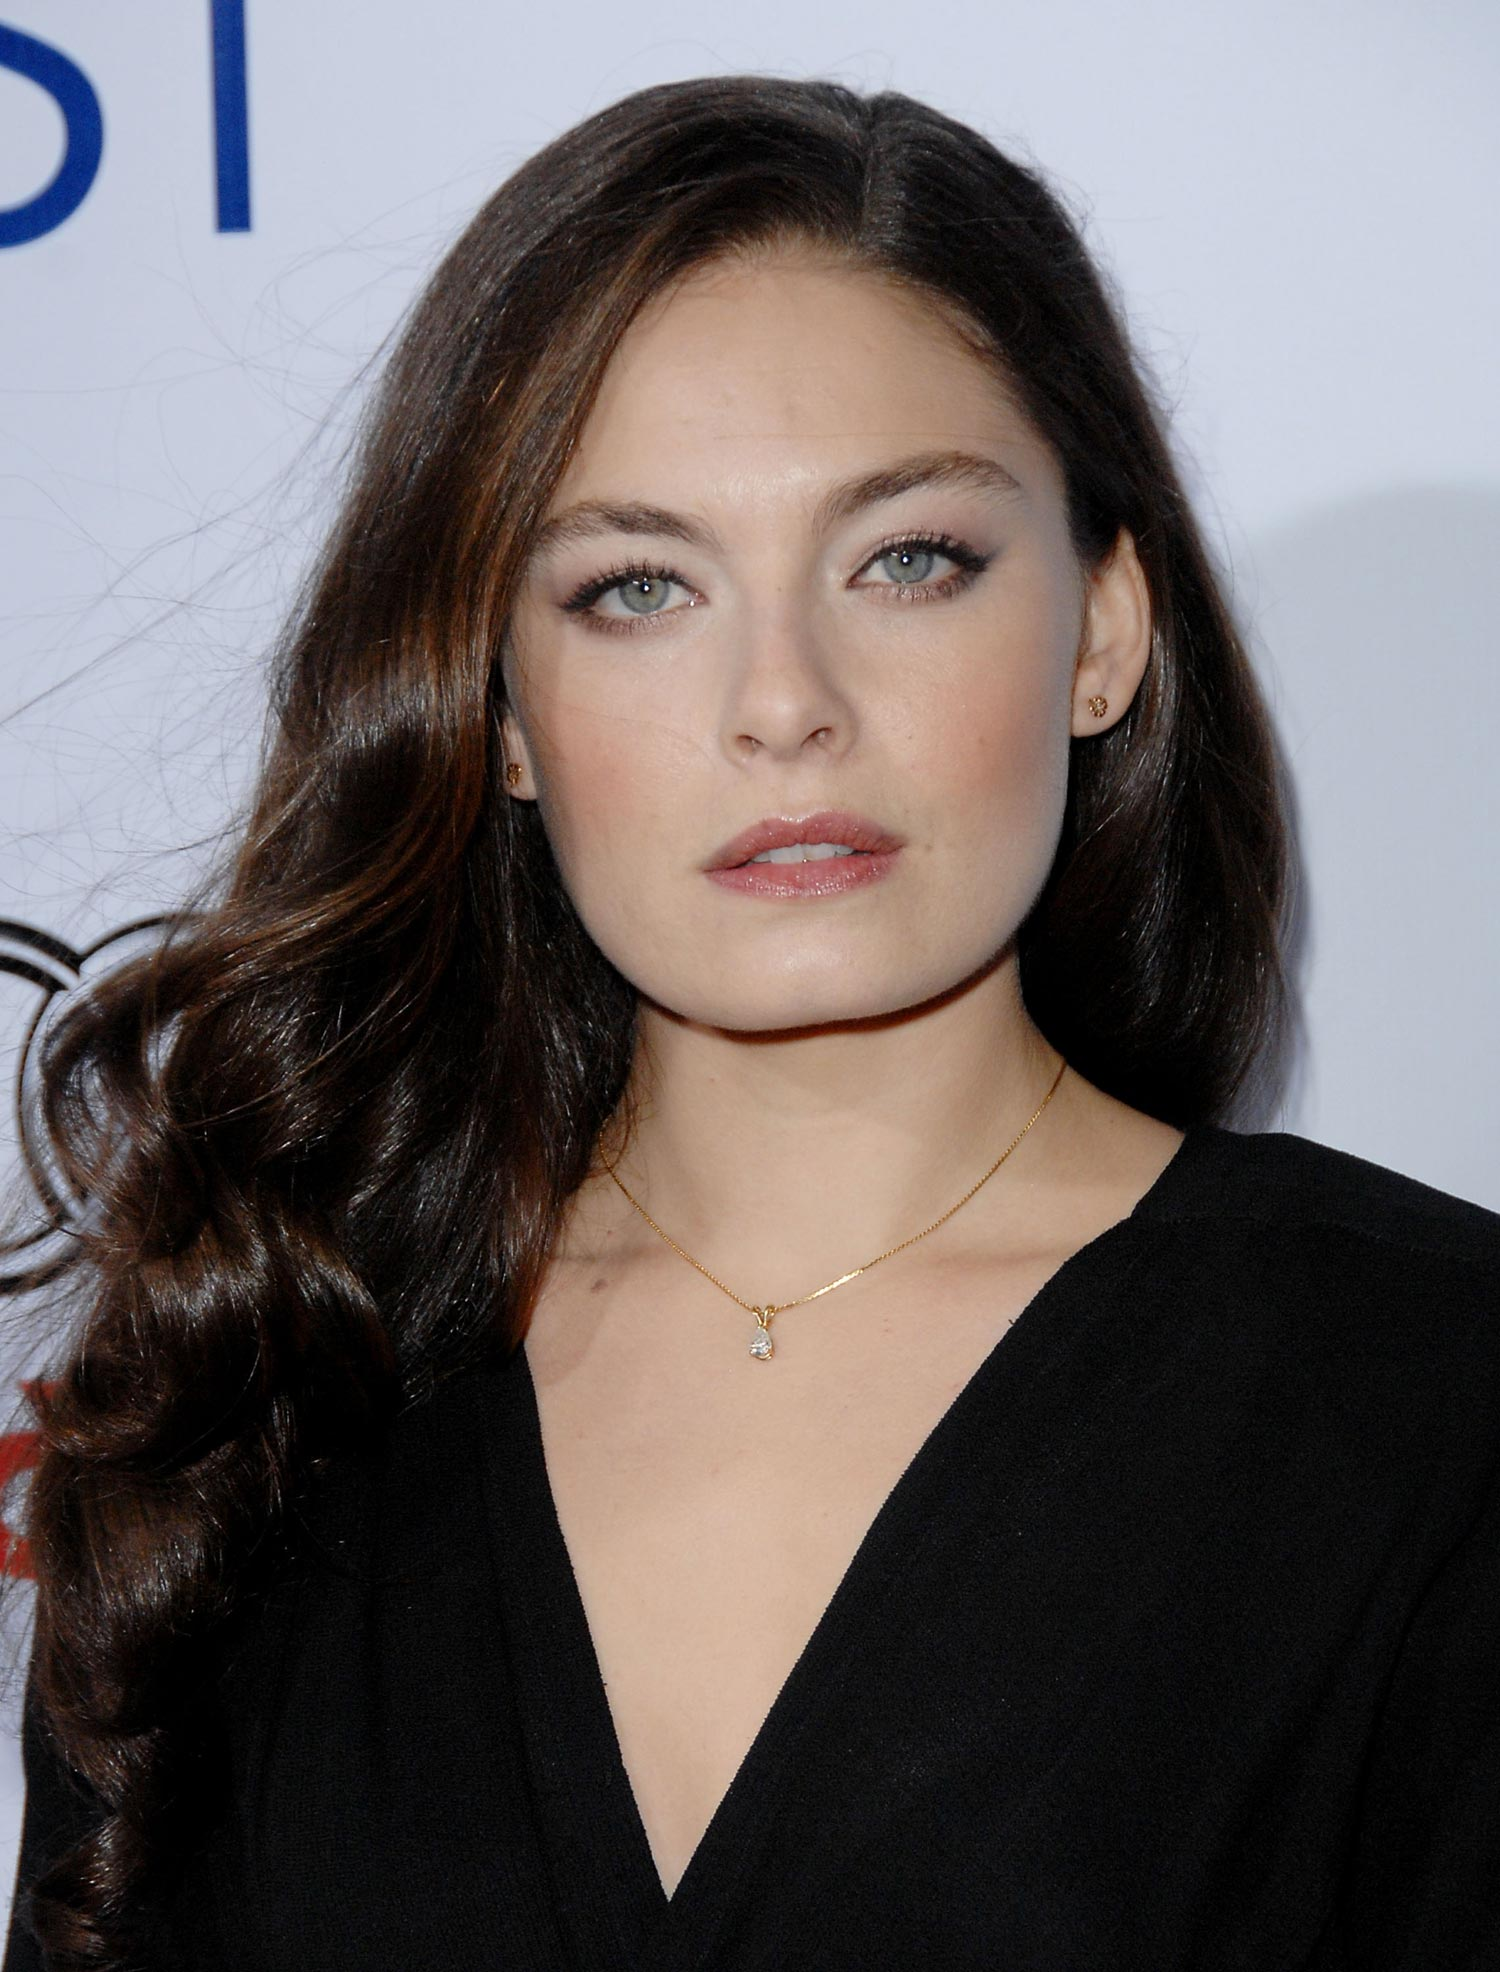 The 34-year old daughter of father Jeff Dunas and mother Elyssa Davalos, 170 cm tall Alexa Davalos in 2017 photo